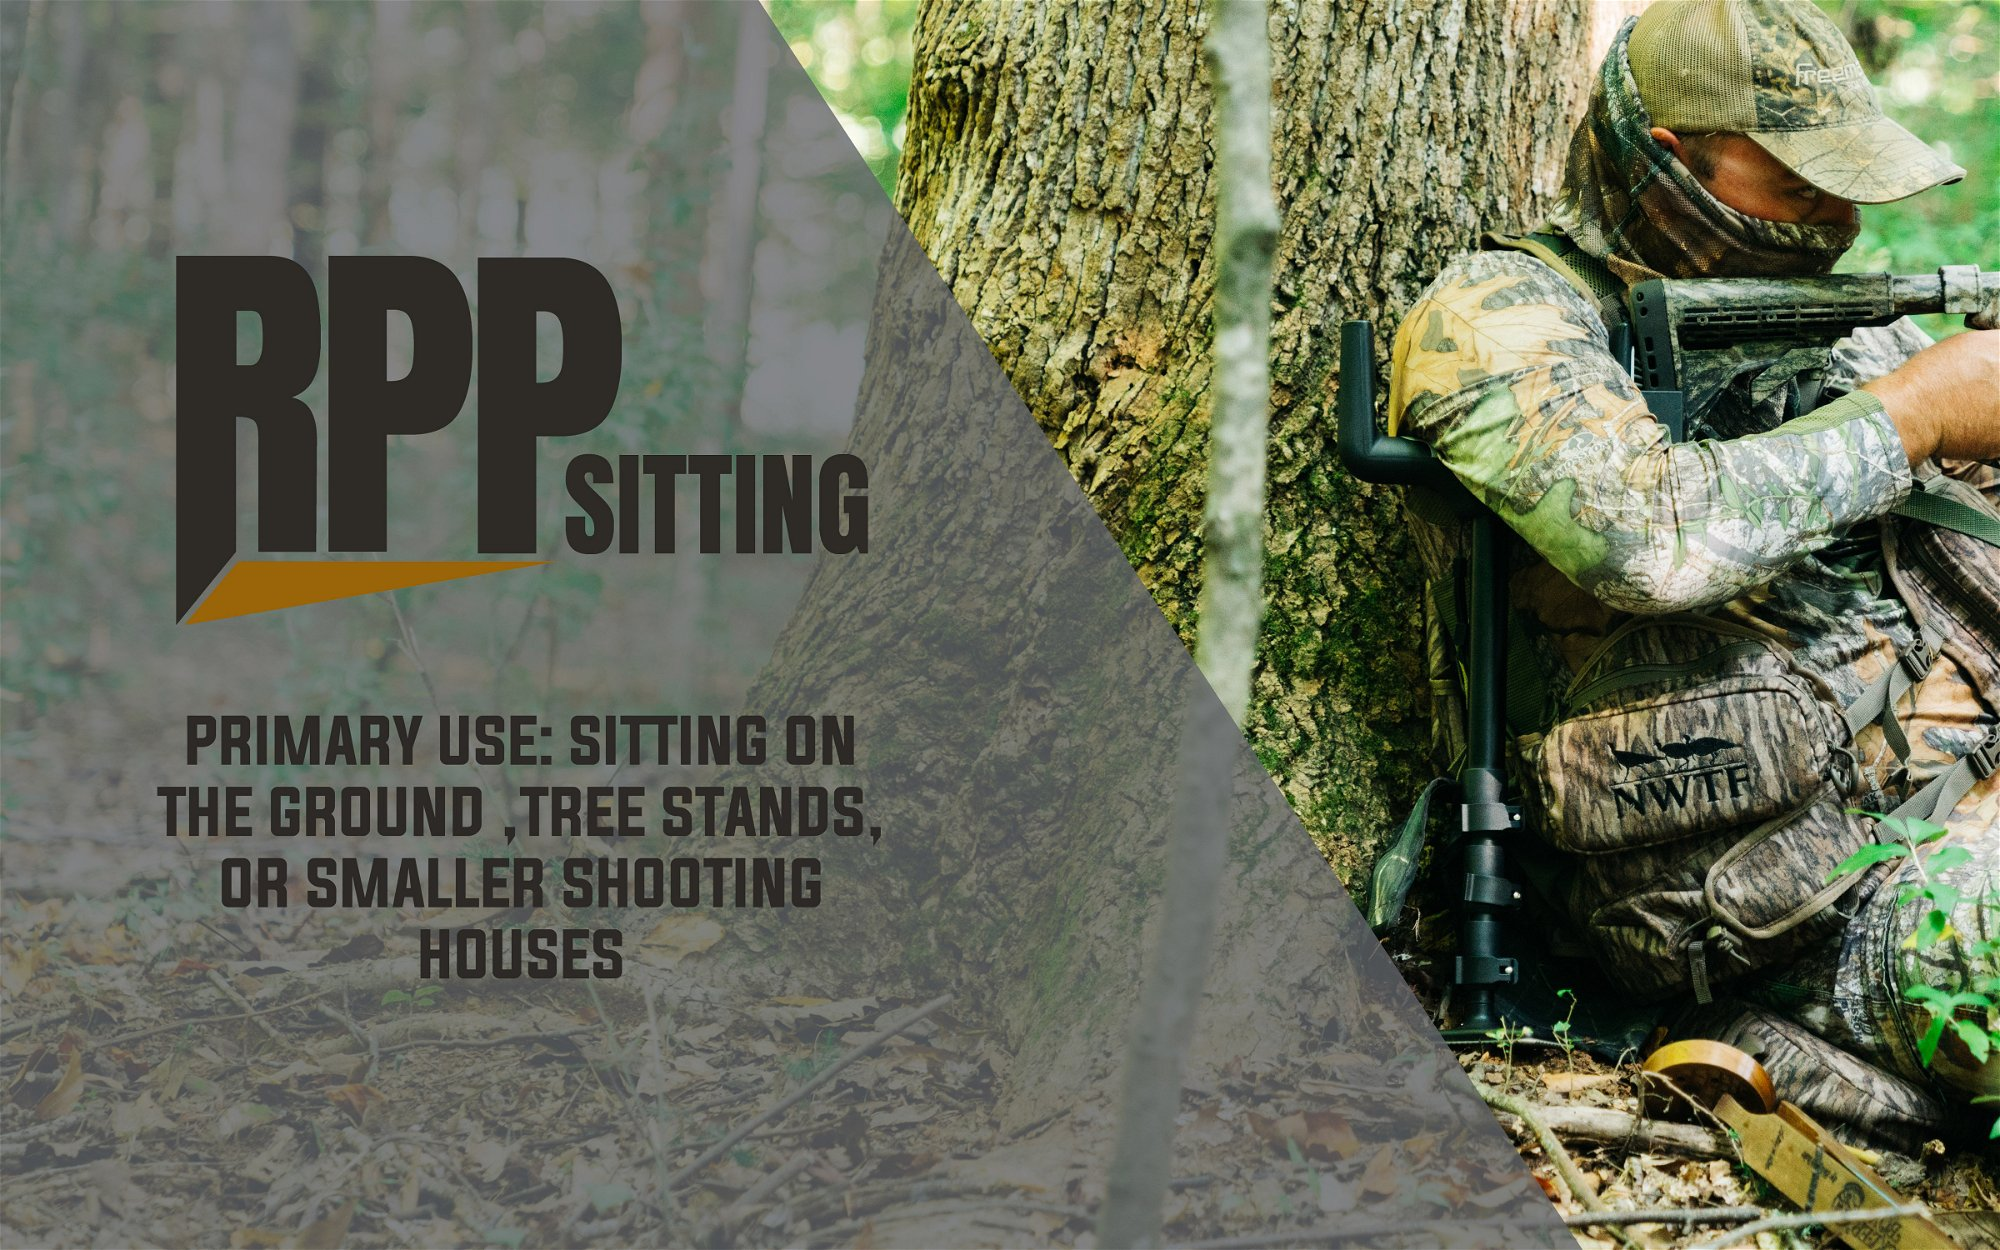 RPP Sitting - Primary Use: Sitting on the Ground, Tree Stands, or Smaller Shooting Houses